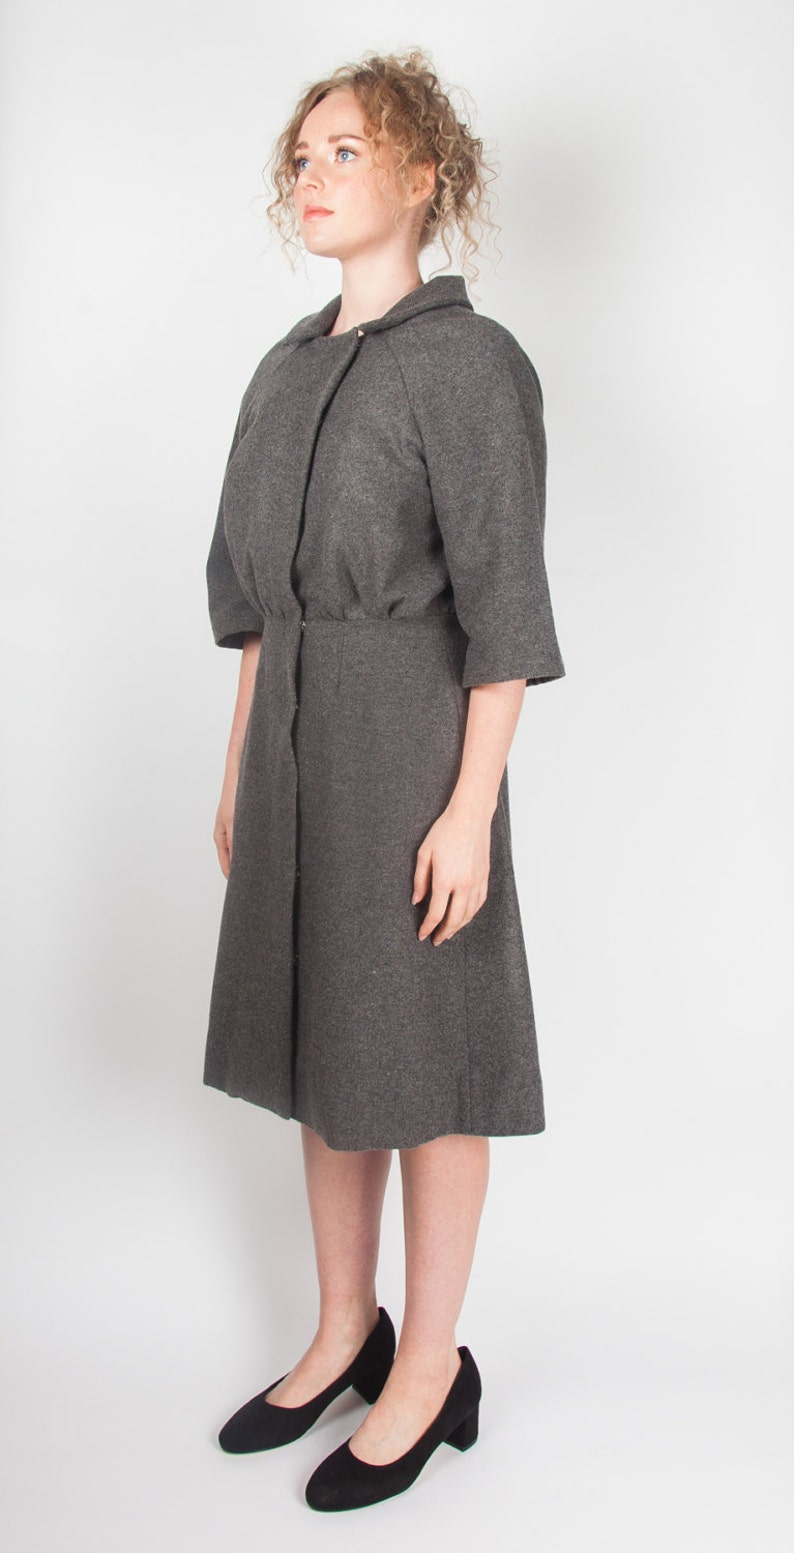 ae1acf9d592 Grey Flannel Coat Dress 1950s style workwear classic